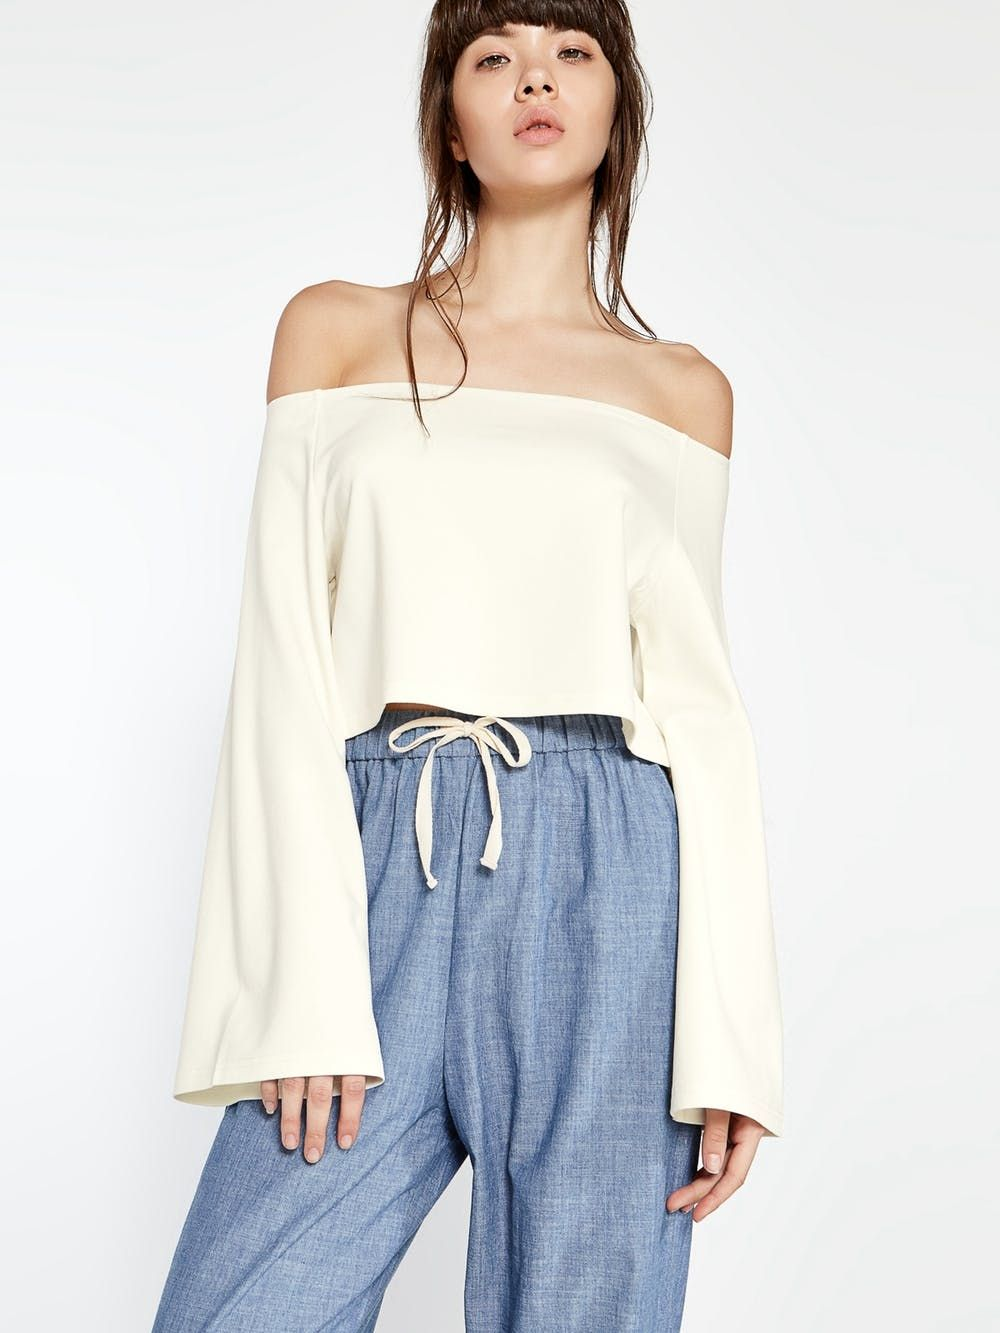 7d518aec80f5 Aden Bell Sleeve Off Shoulder Top - White - Pomelo Singapore ...